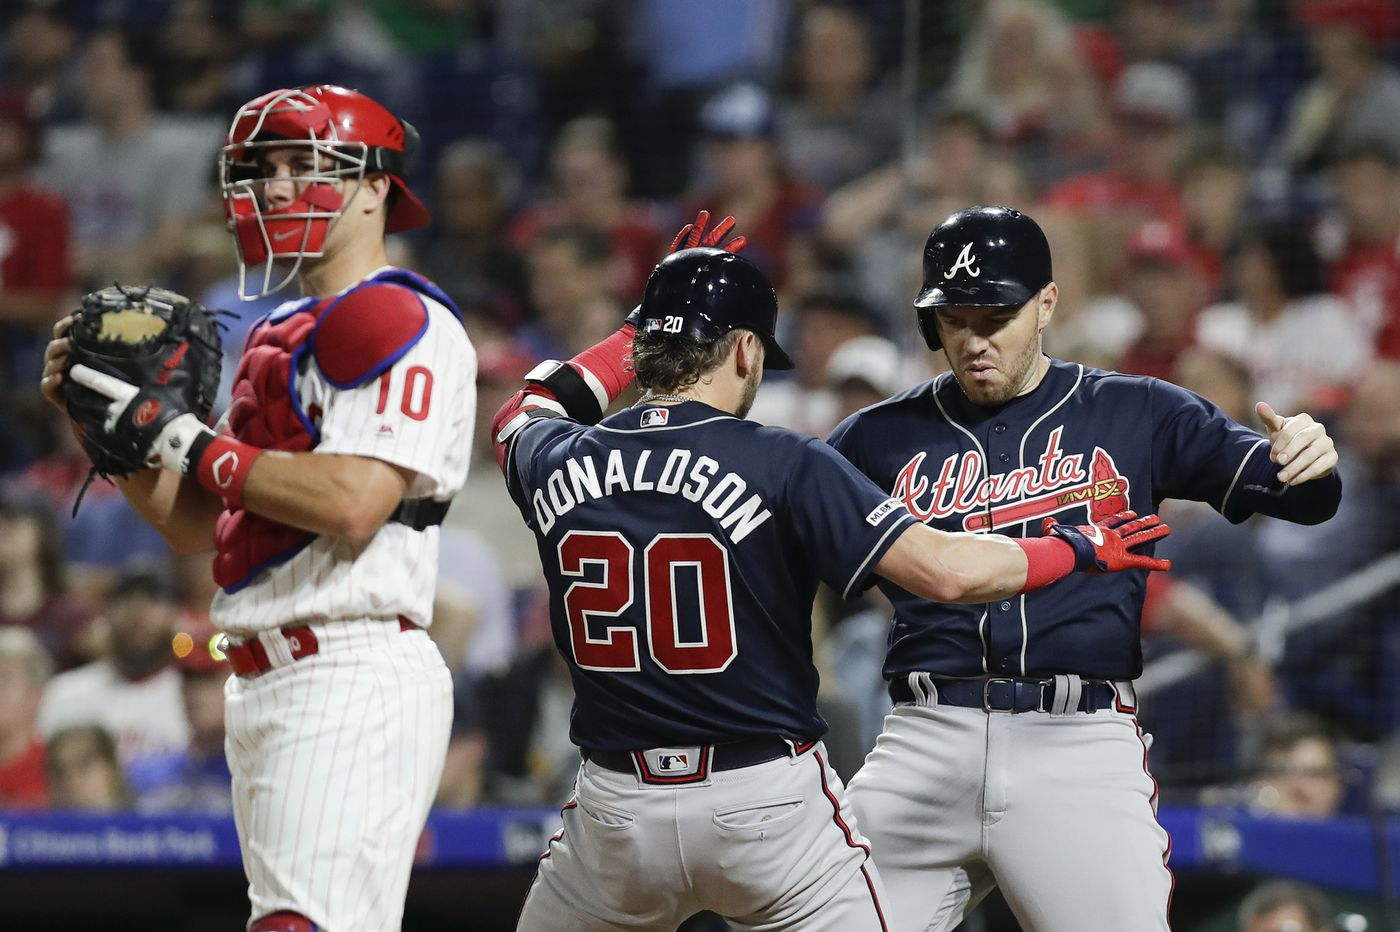 Phillies face wide talent gap when compared to Braves | Bob Brookover